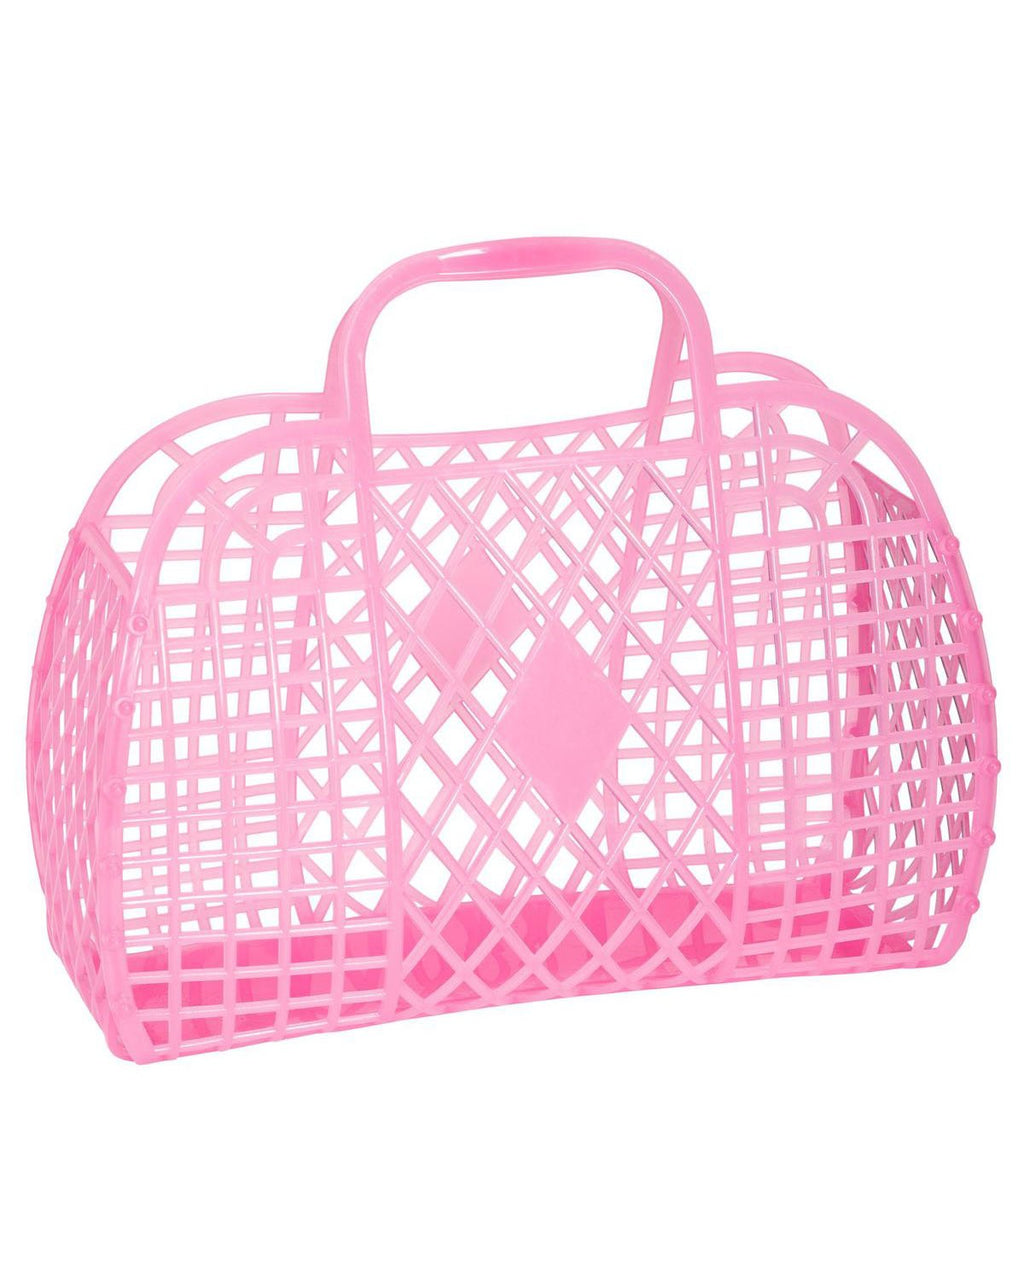 Retro Basket Hot Pink Small